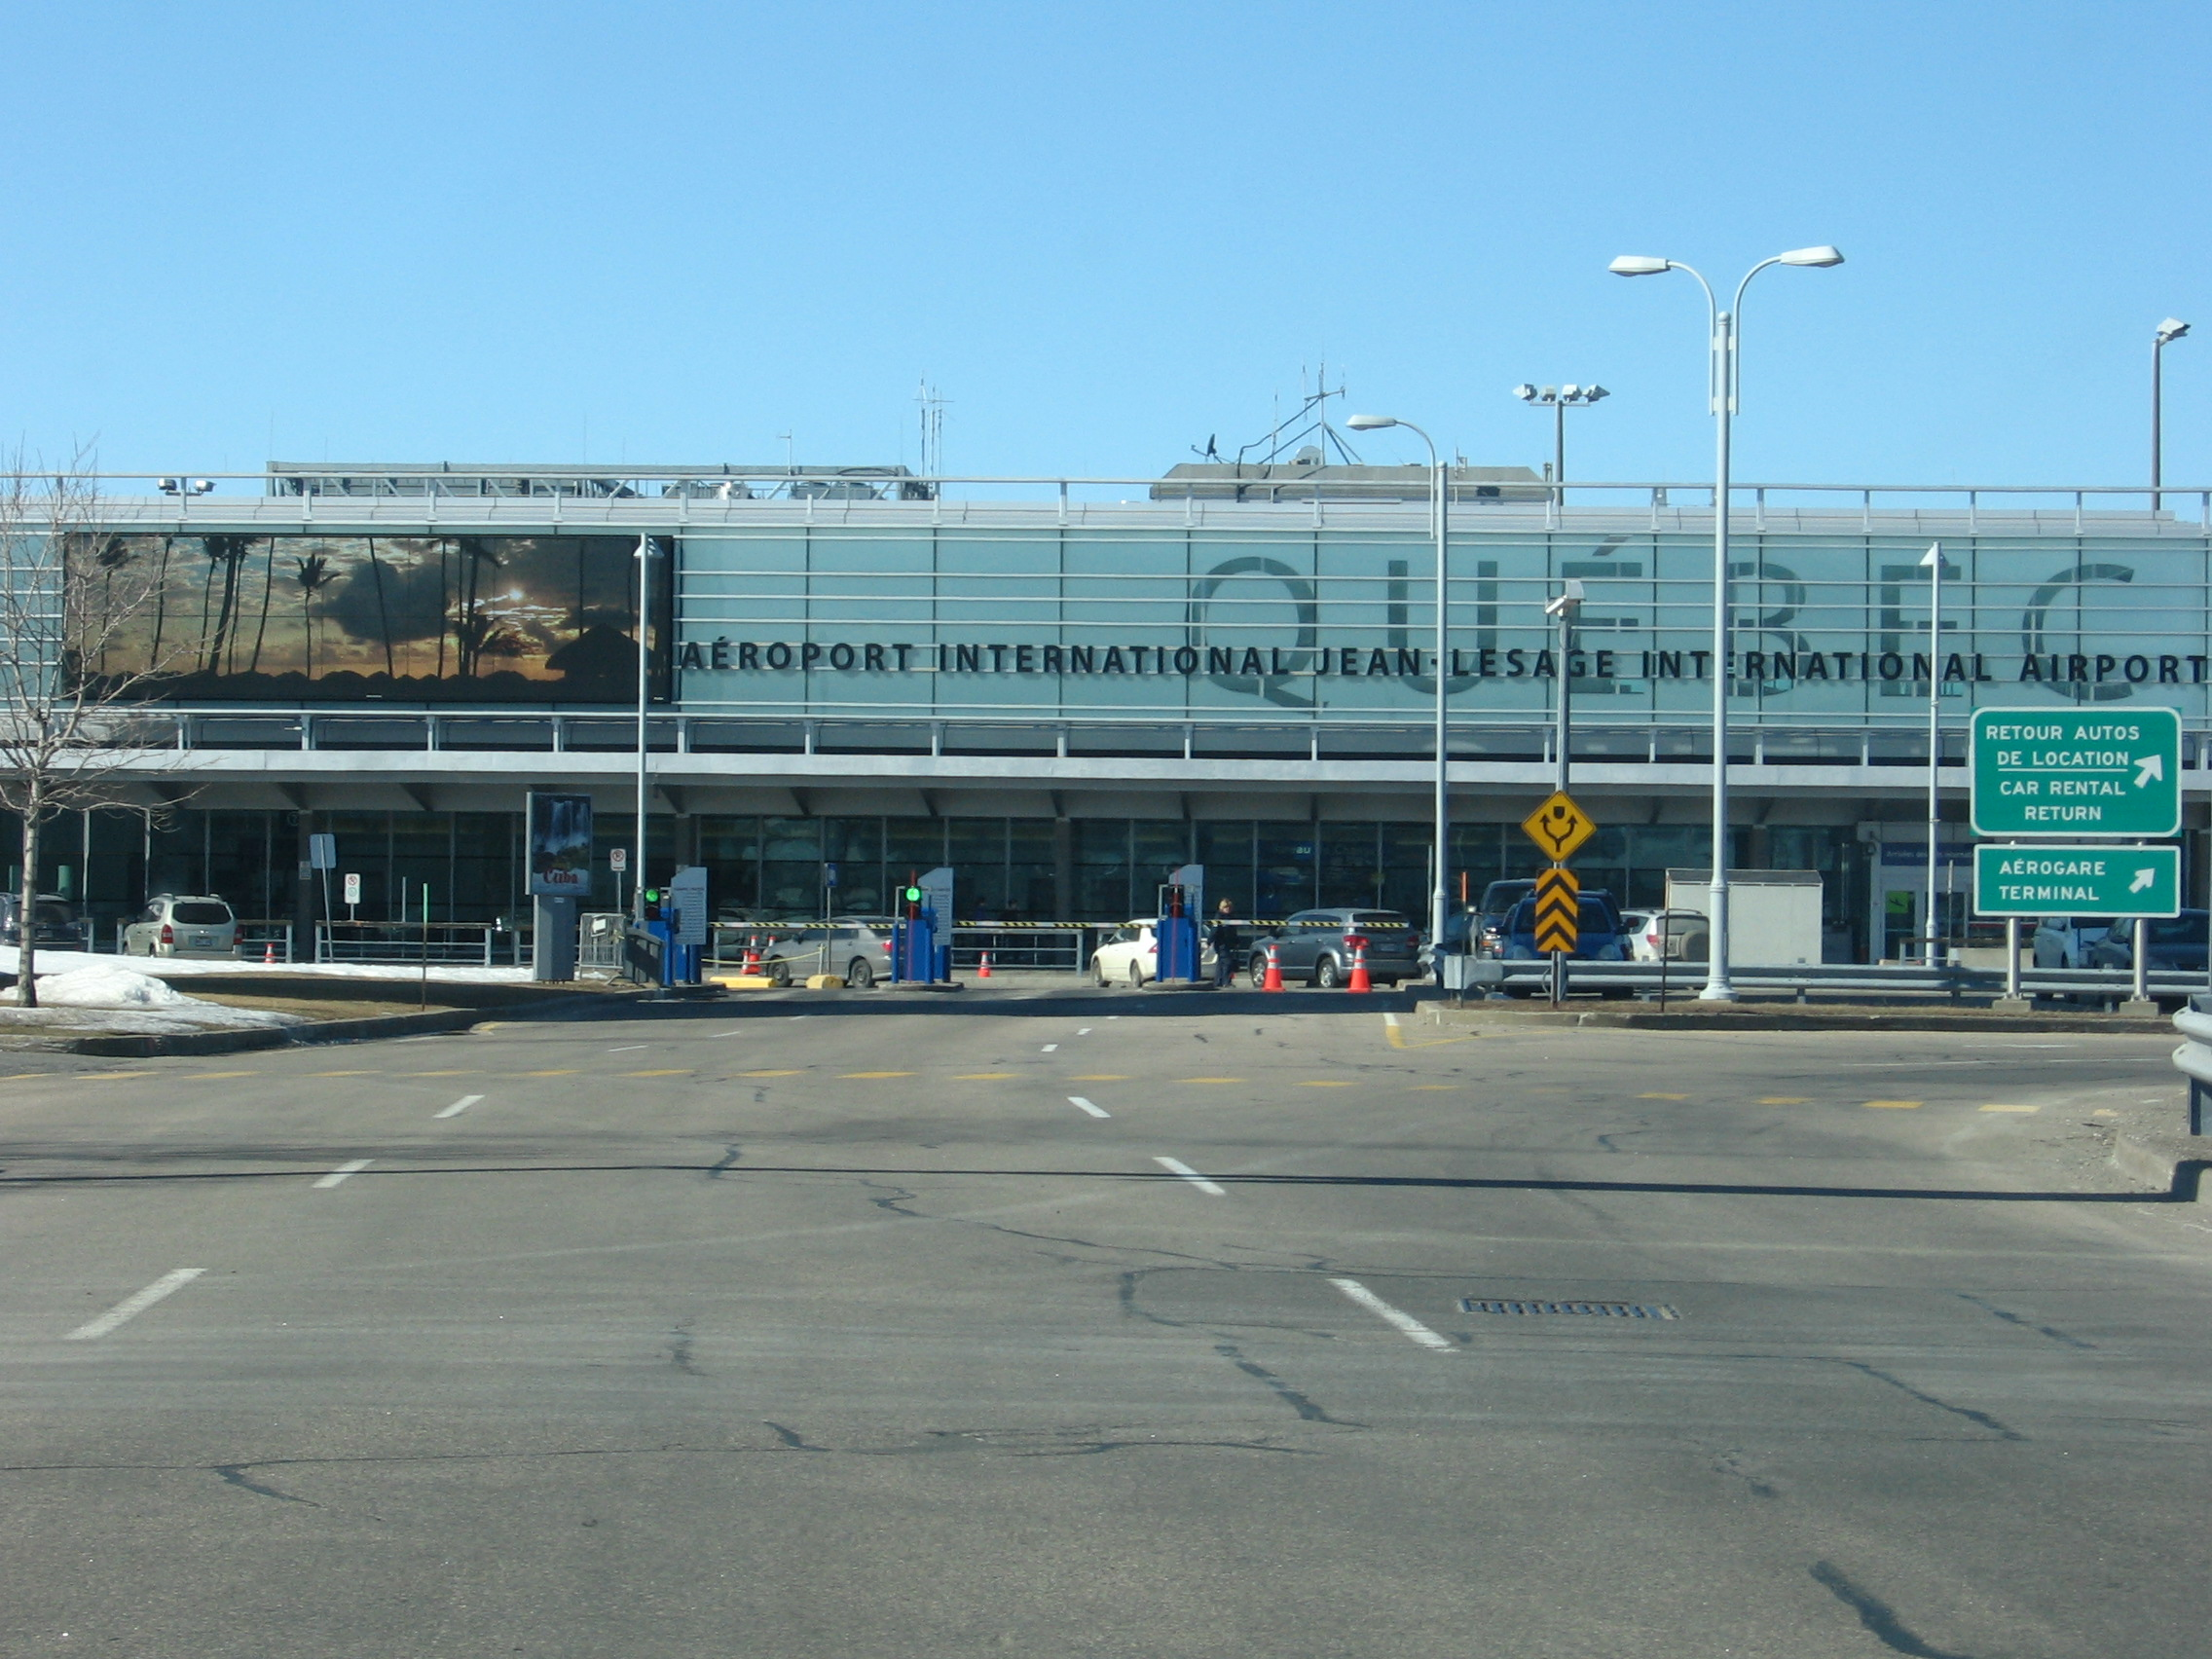 Aeroporto Quebec City : Aéroport international jean lesage de québec